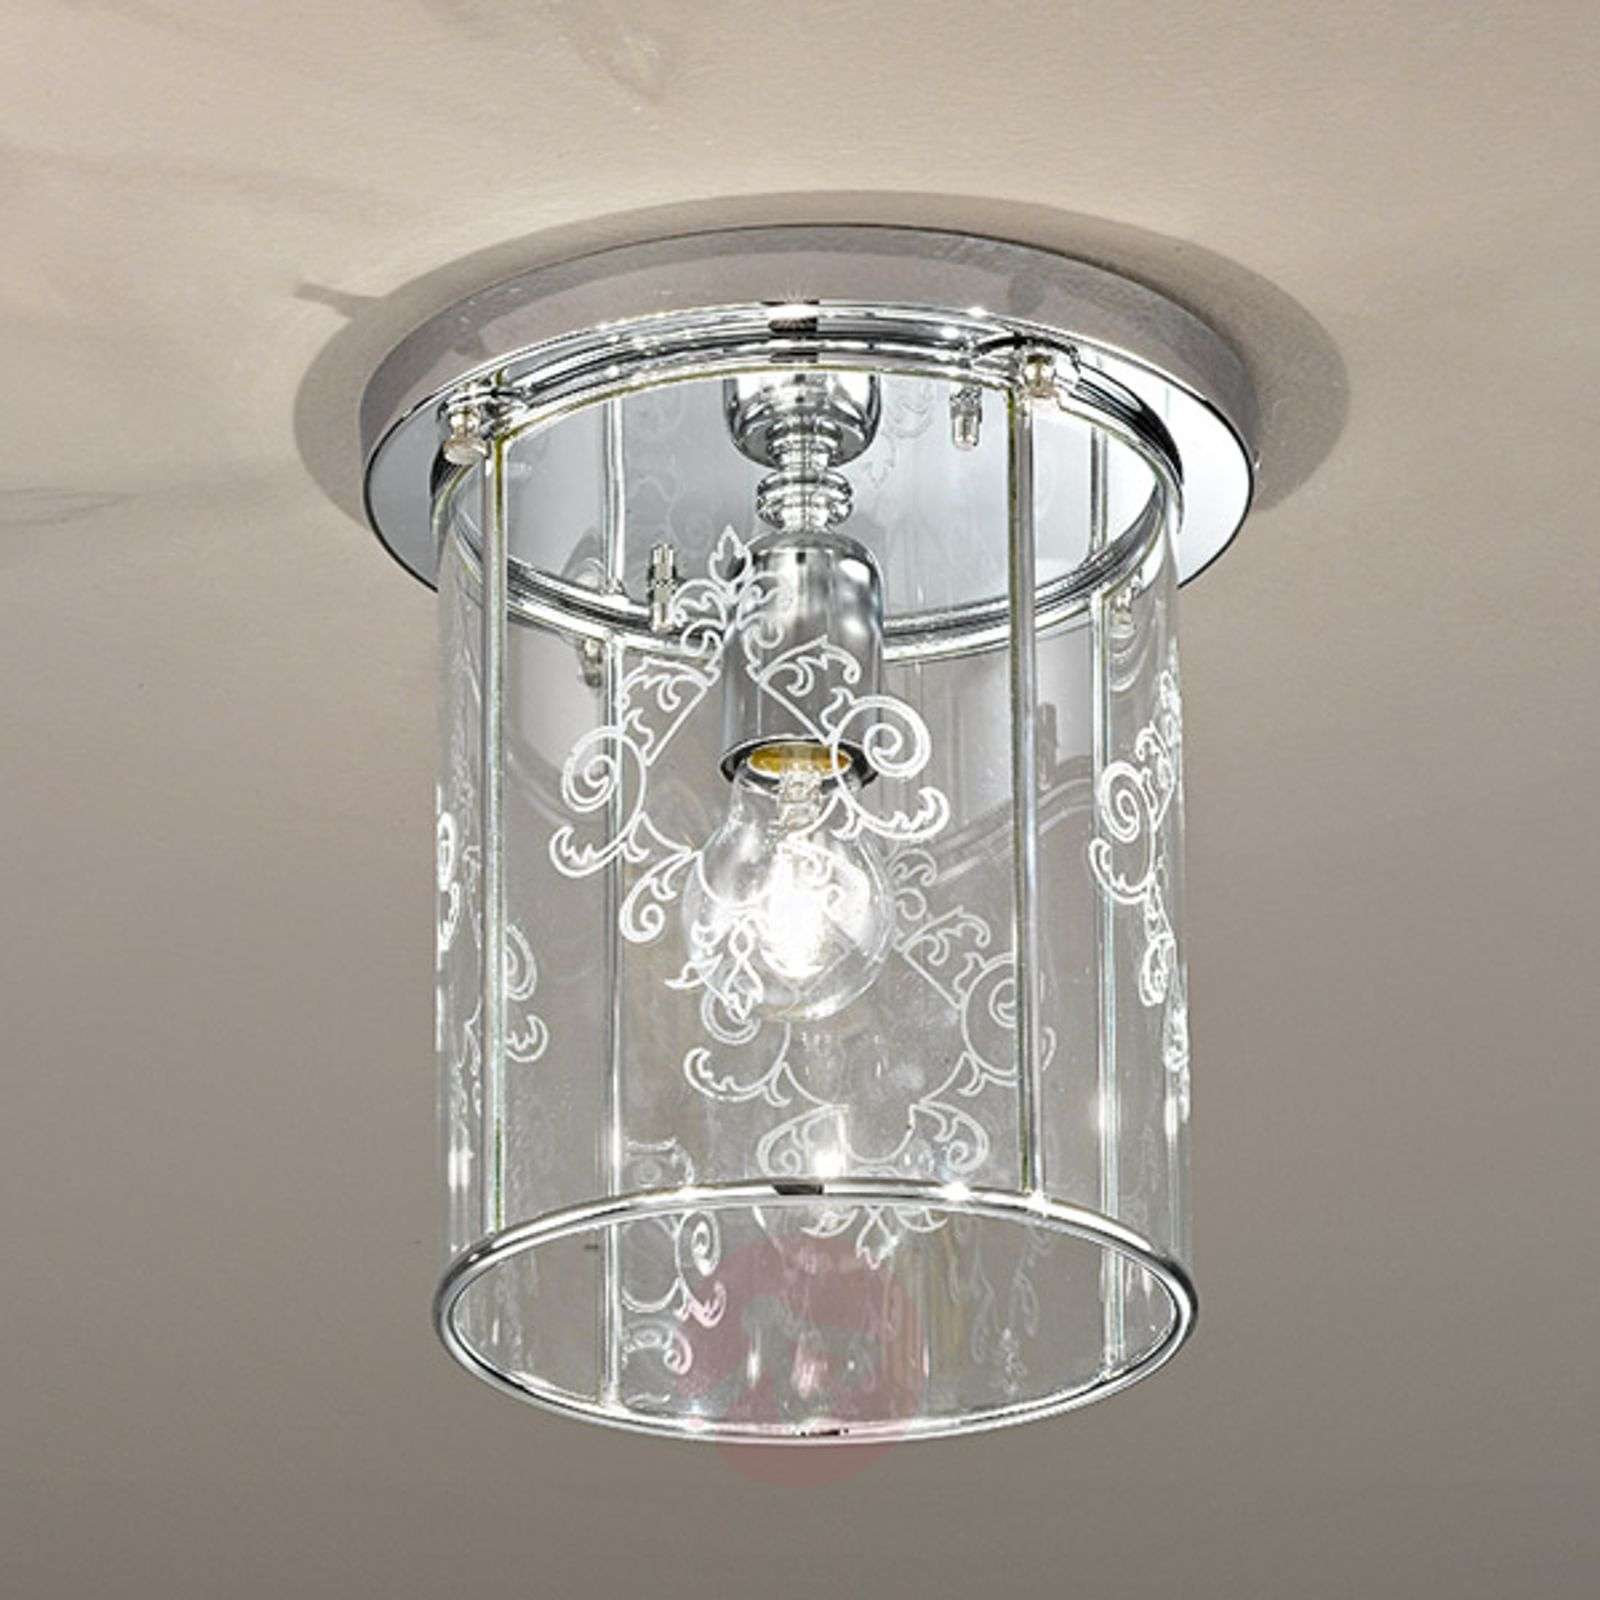 Greta ceiling light with decorated crystal glass-2008232-01